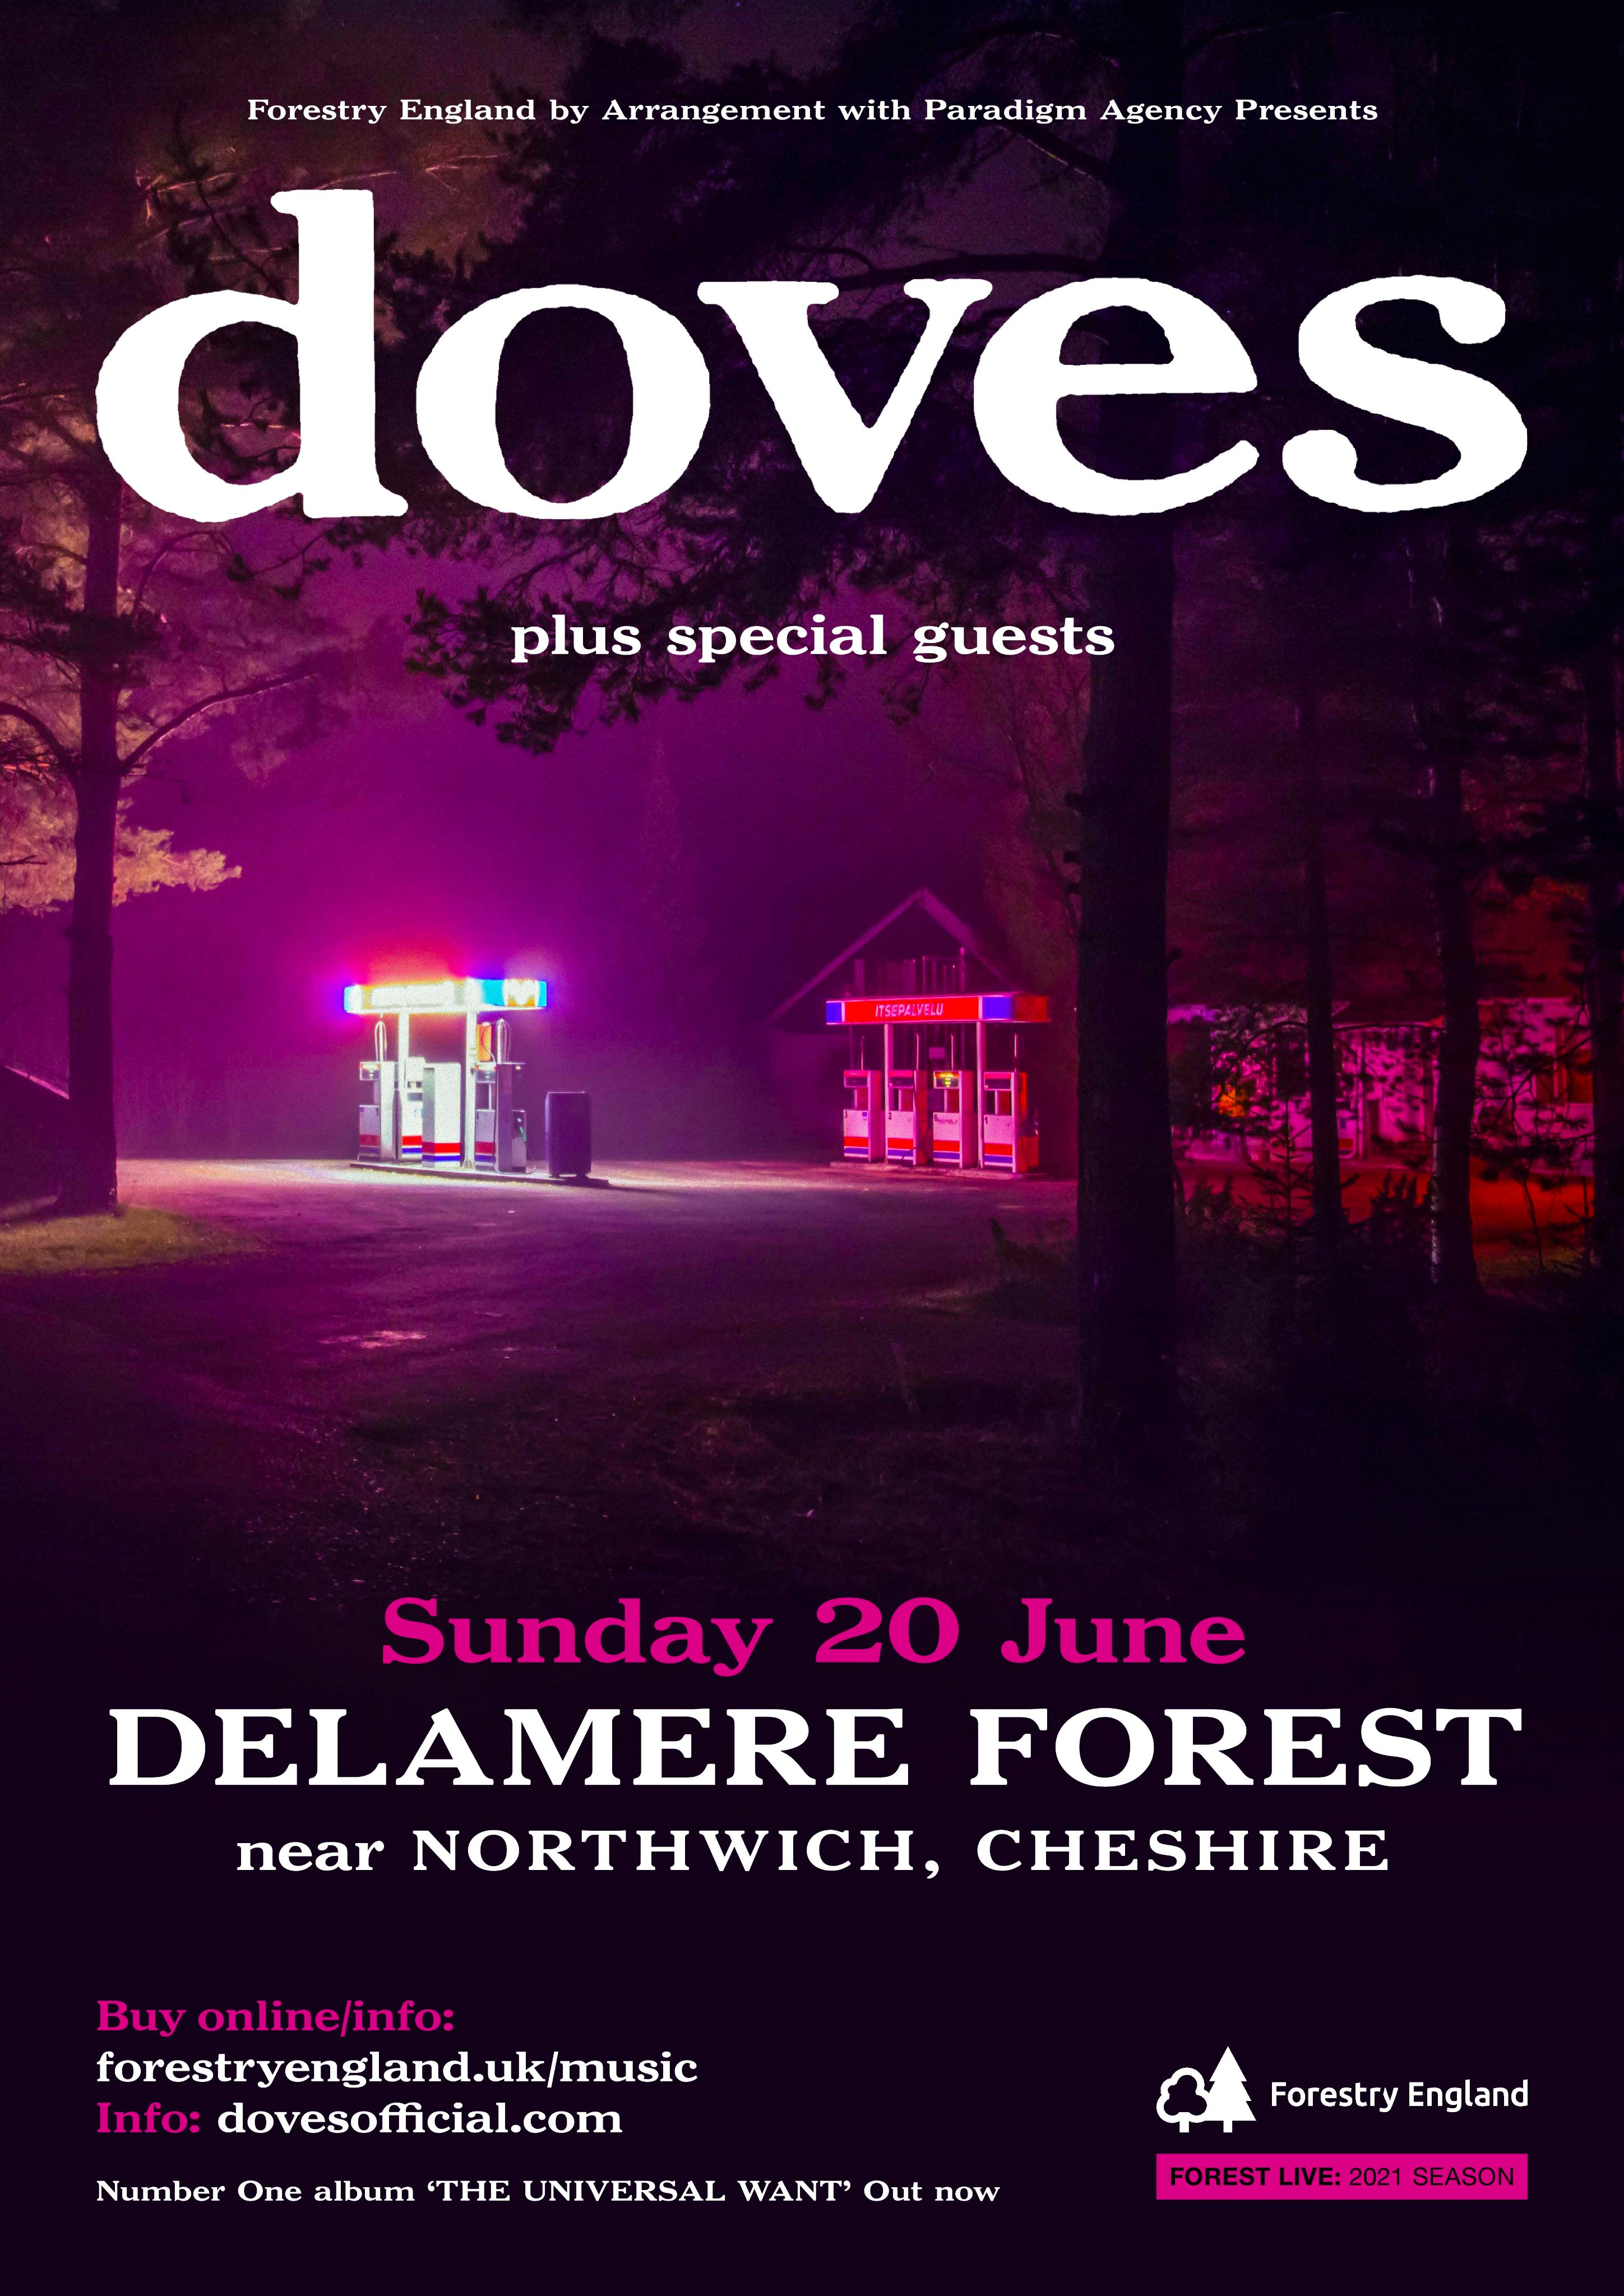 Image for article: Halifax & Delamere Forest Shows Announced